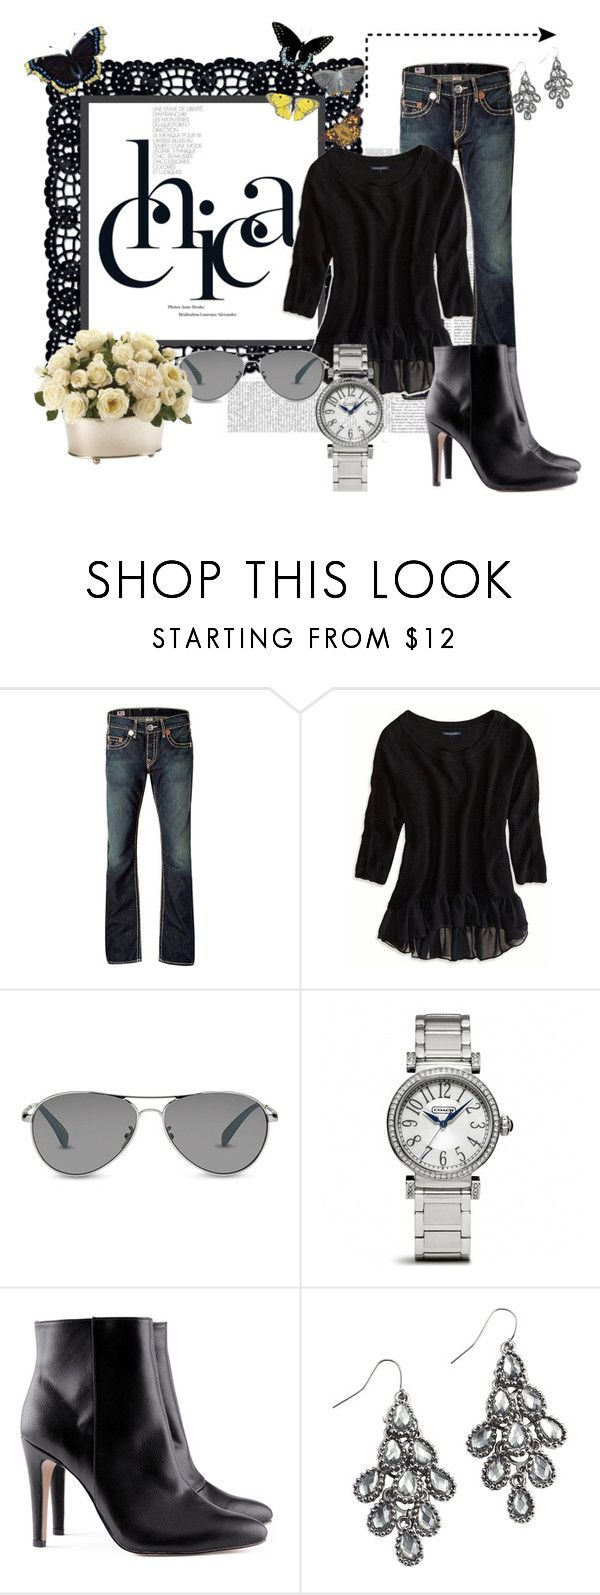 """Untitled #11"" by amy-phillips ❤ liked on Polyvore featuring True Religion, American Eagle Outfitters, TOMS, Coach, H&M, Pier 1 Imports and Ethan Allen"